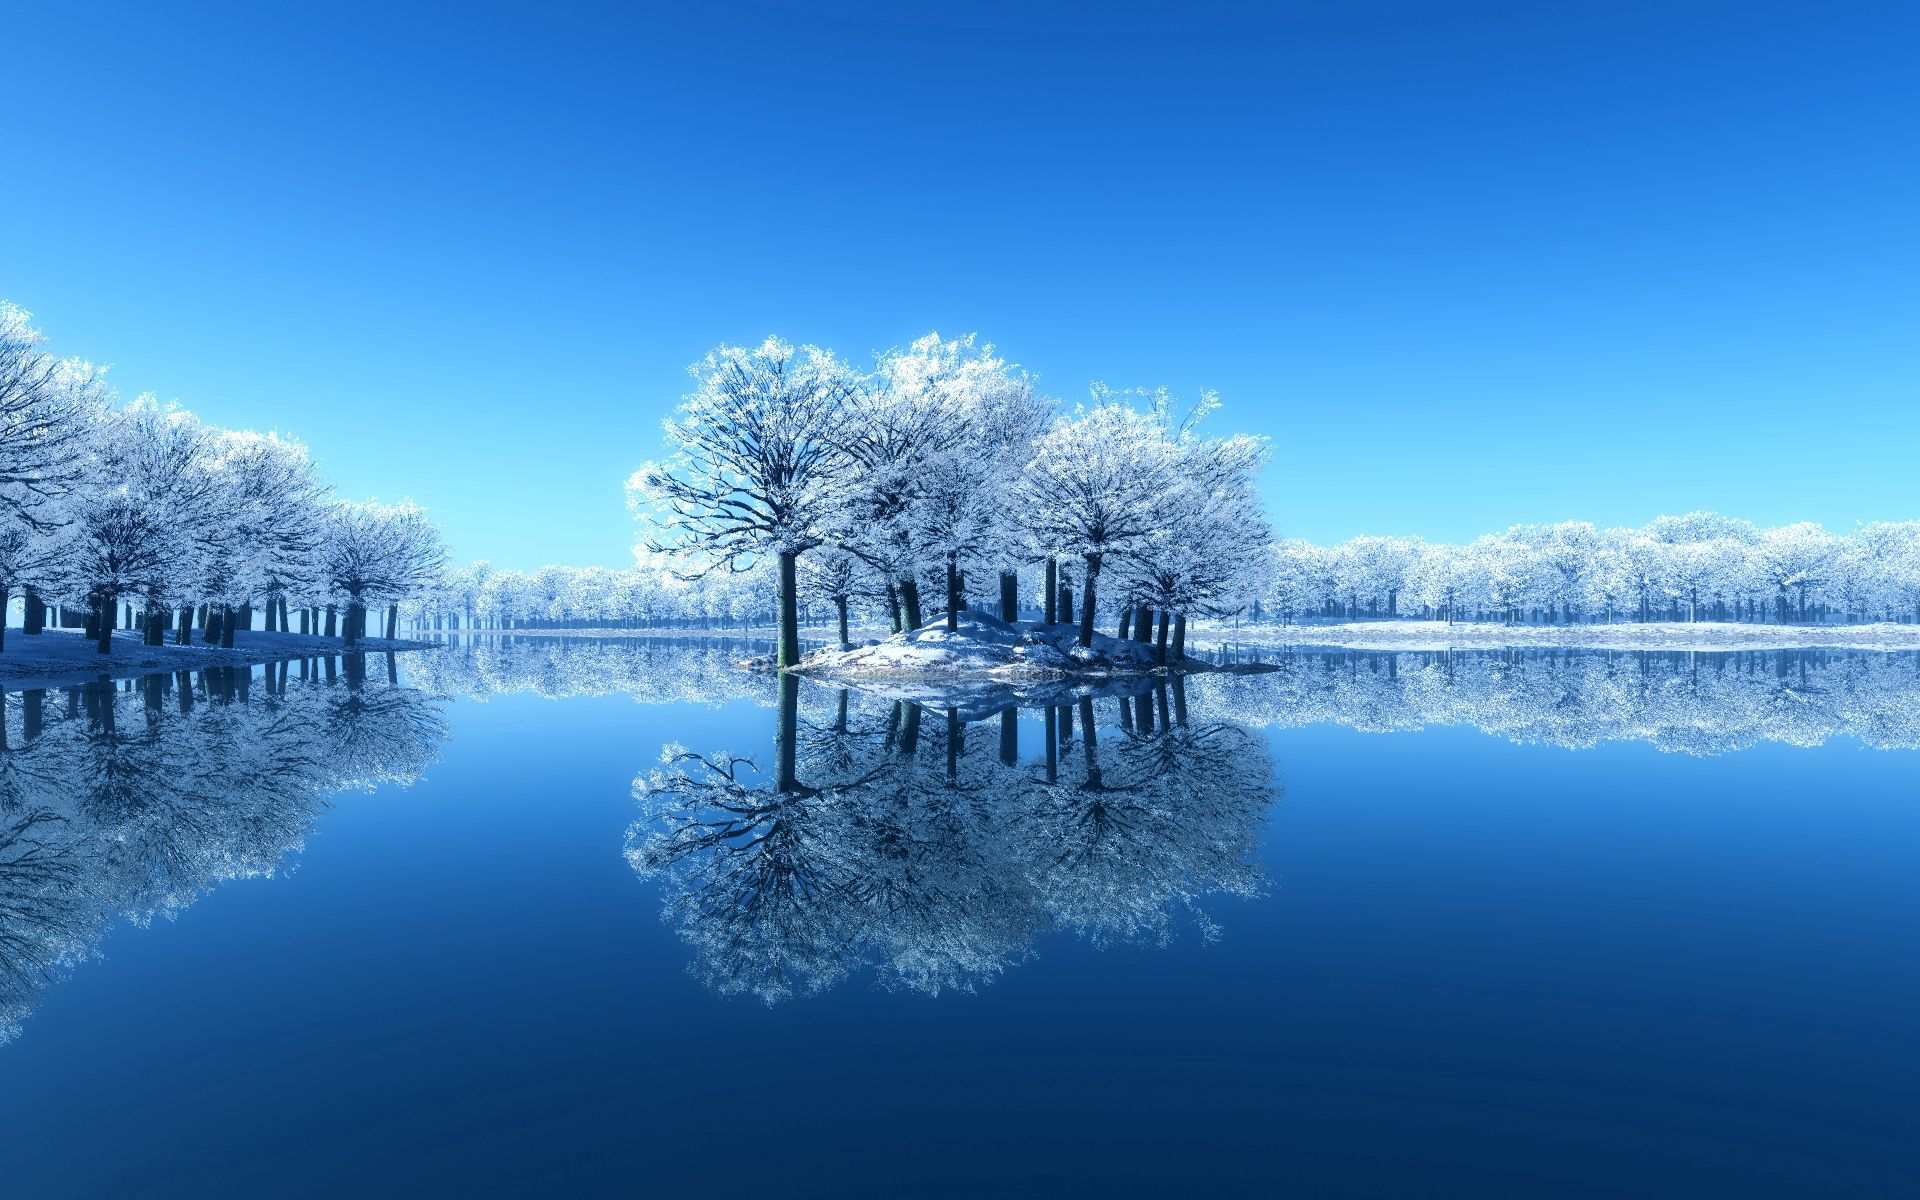 157824 download wallpaper Surface, Nature, Trees, Lake, Frost, Hoarfrost, Island, Islet, Purity screensavers and pictures for free